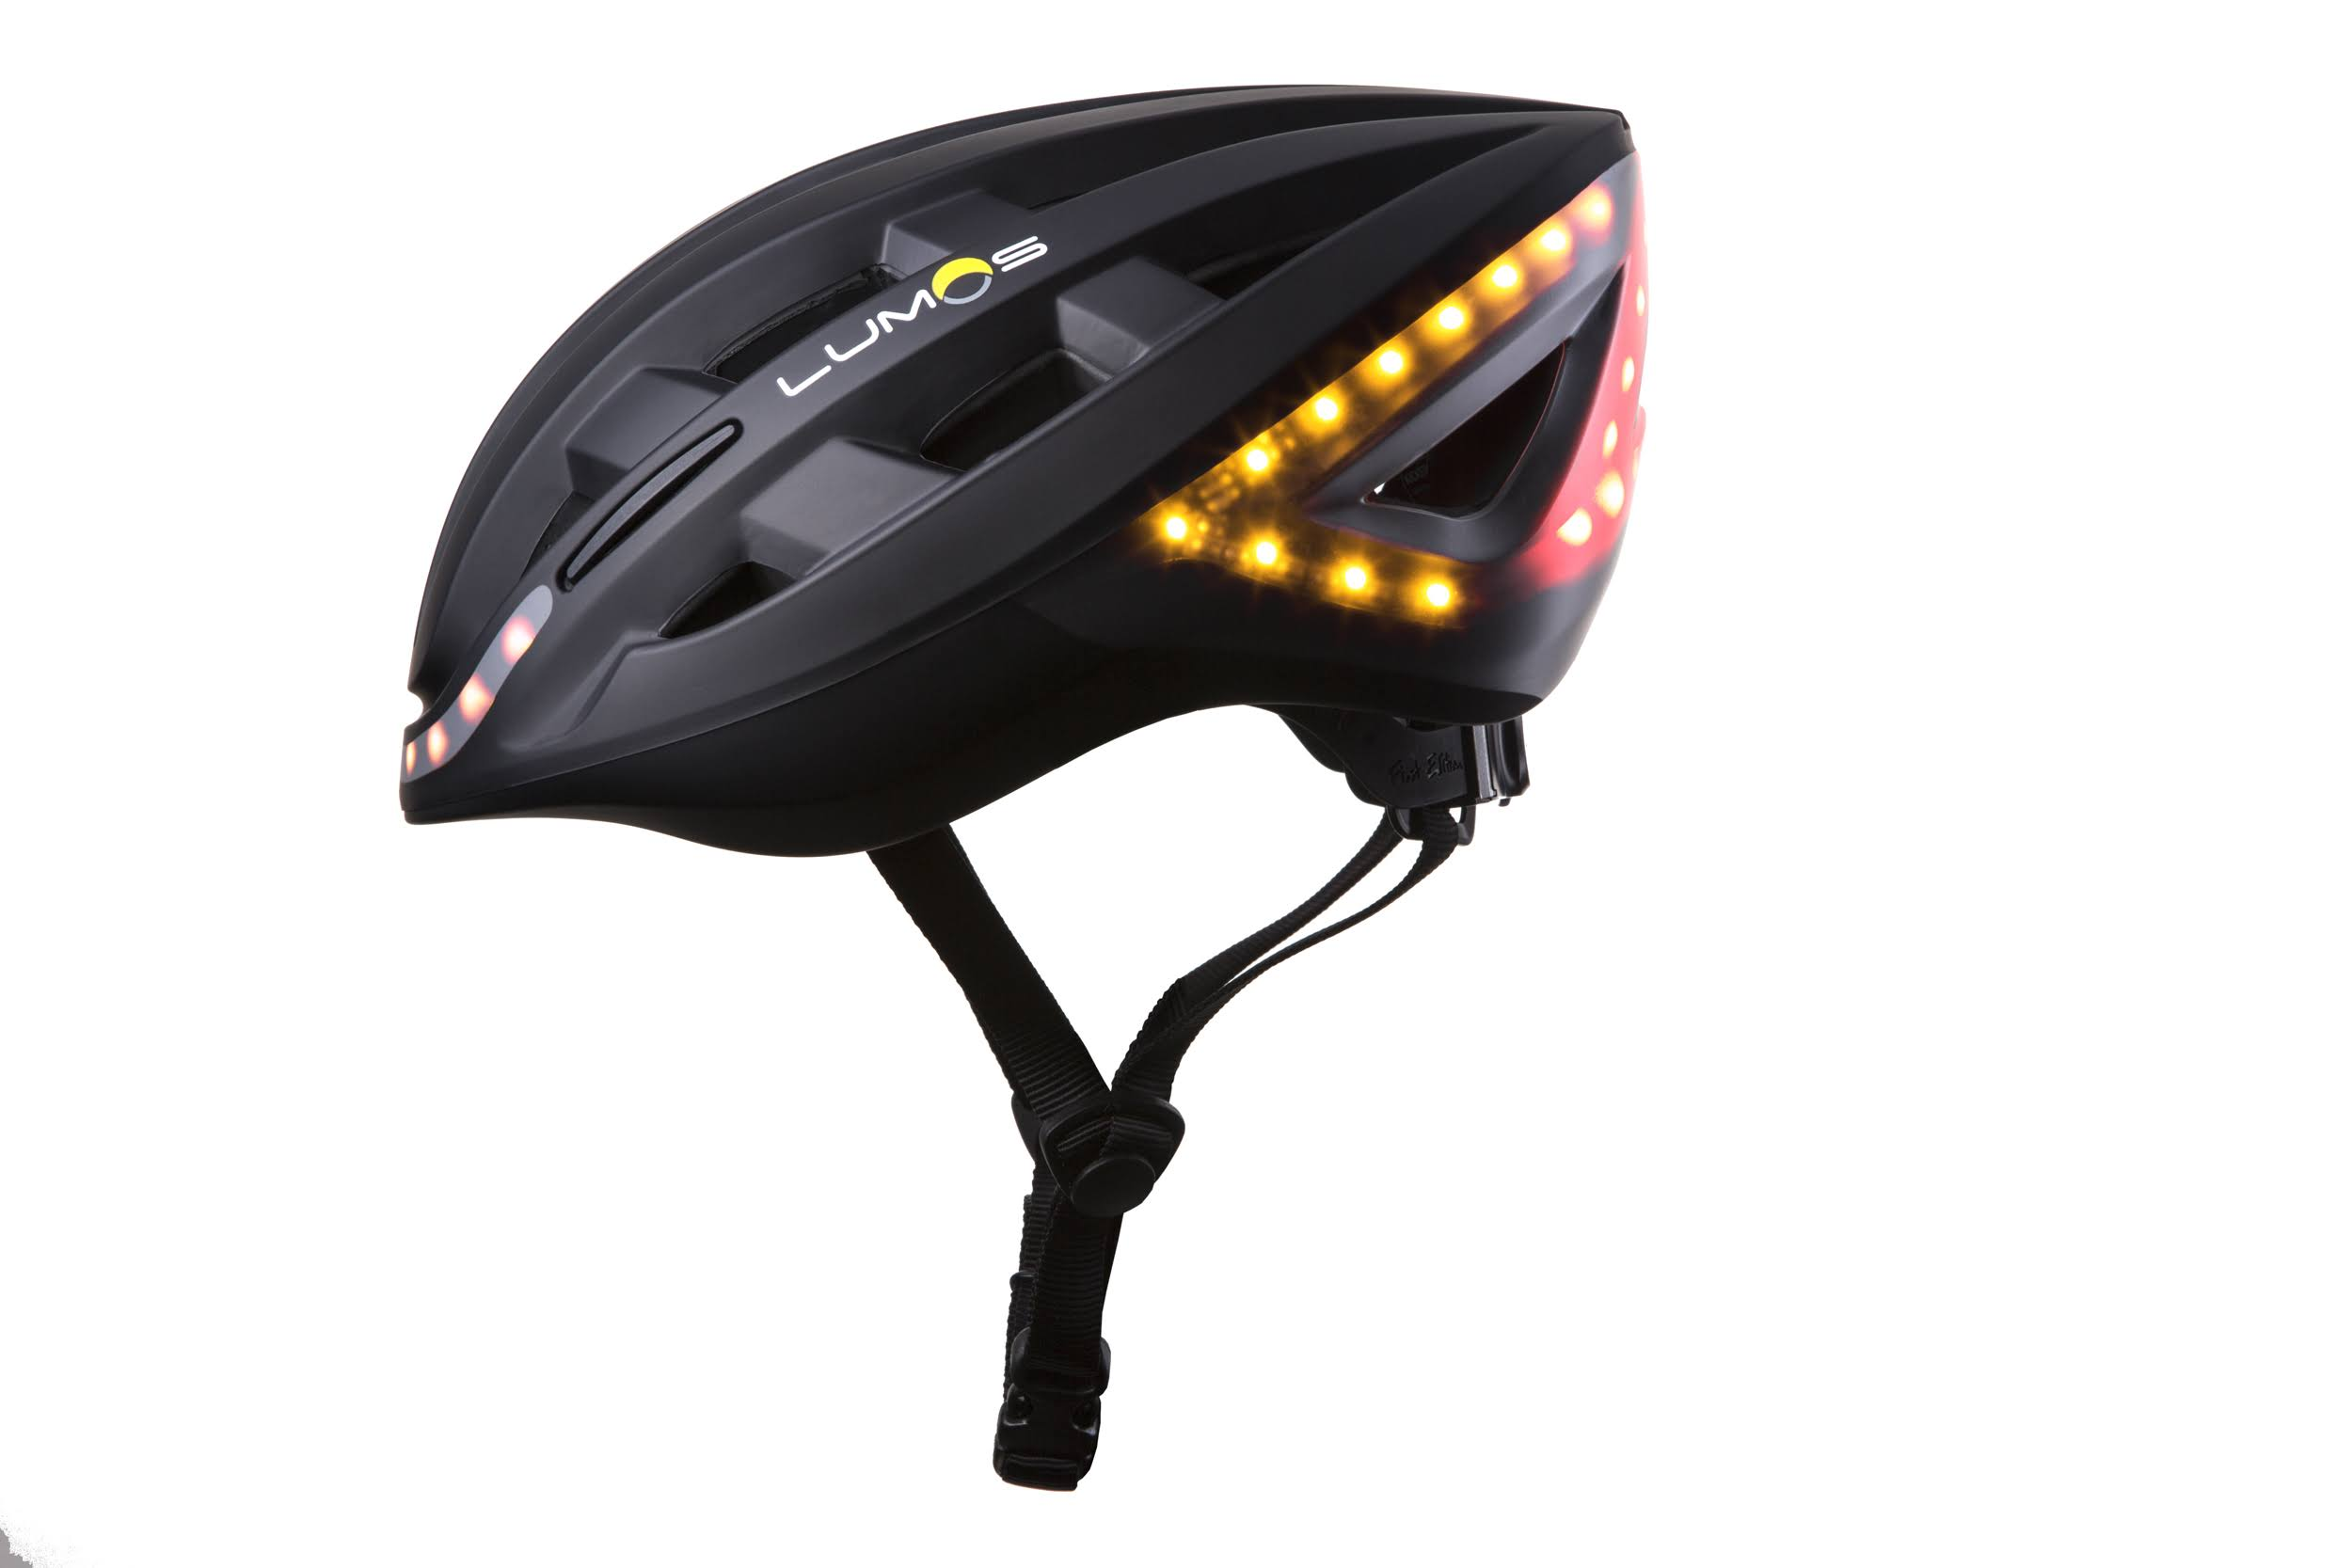 Lumos Wireless Turn Signal Remote Motion Sensor Bike Helmet - Charcoal Black